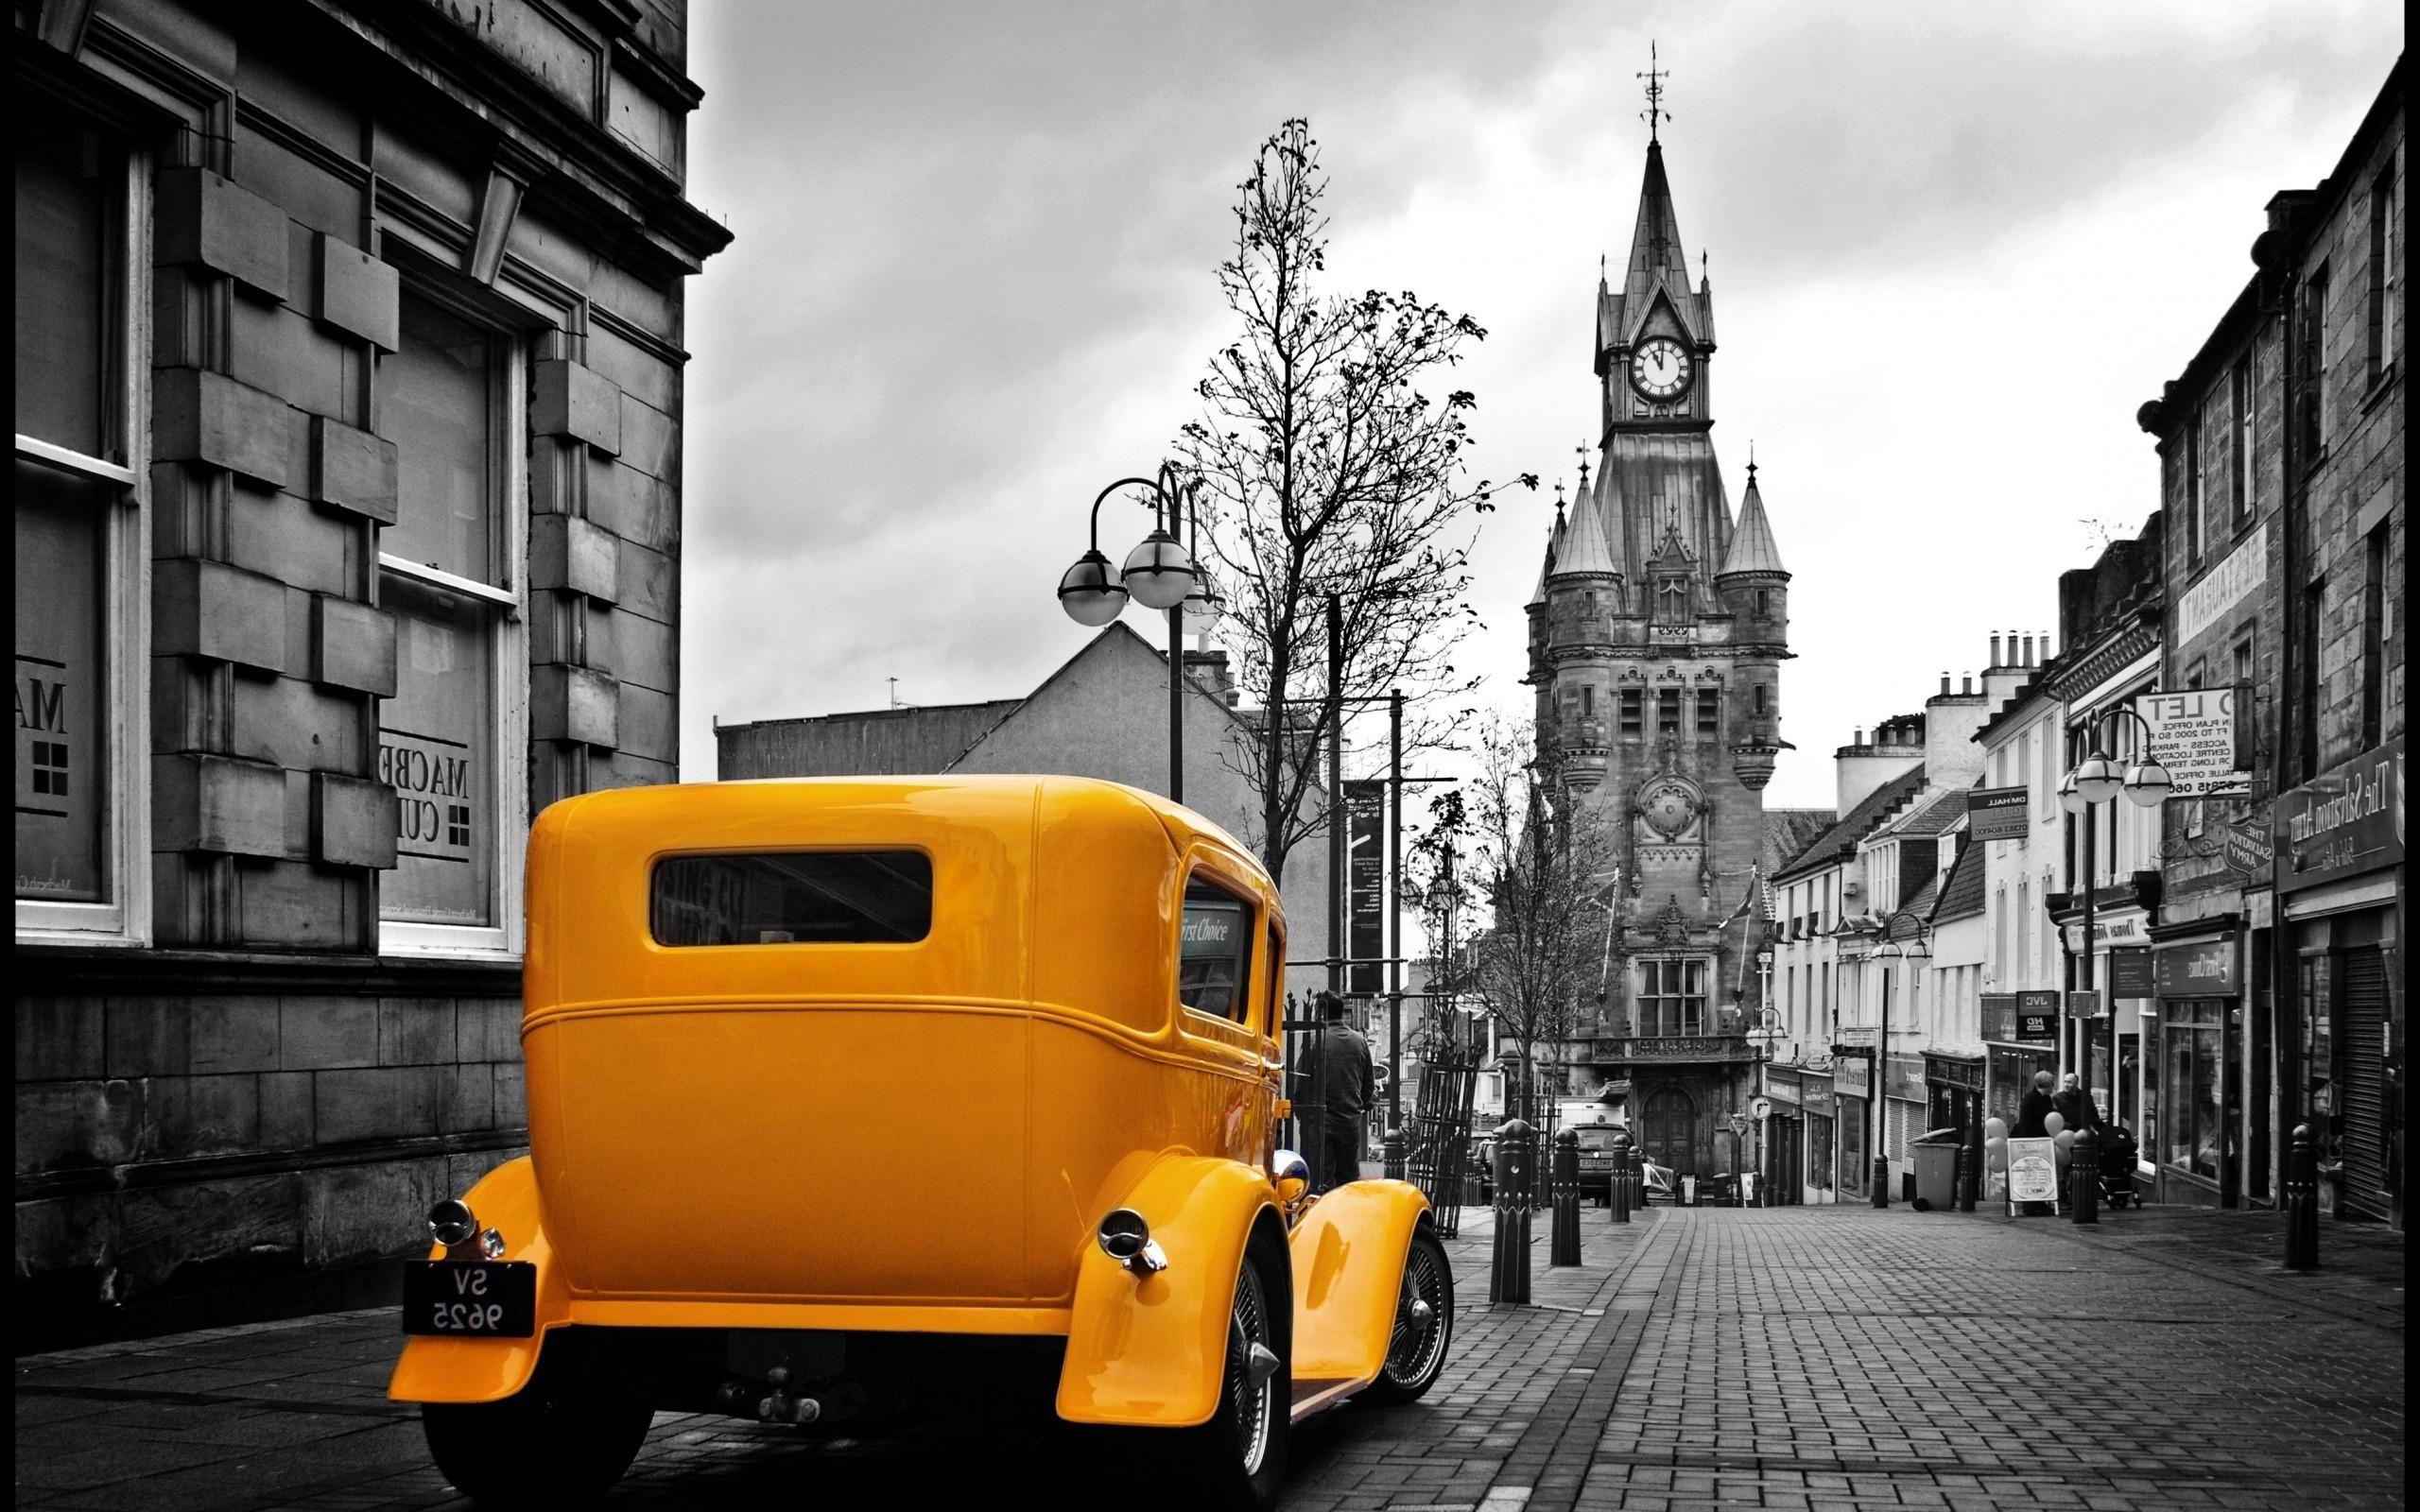 vintage yellow car in a gray city wallpapers hd / desktop and mobile